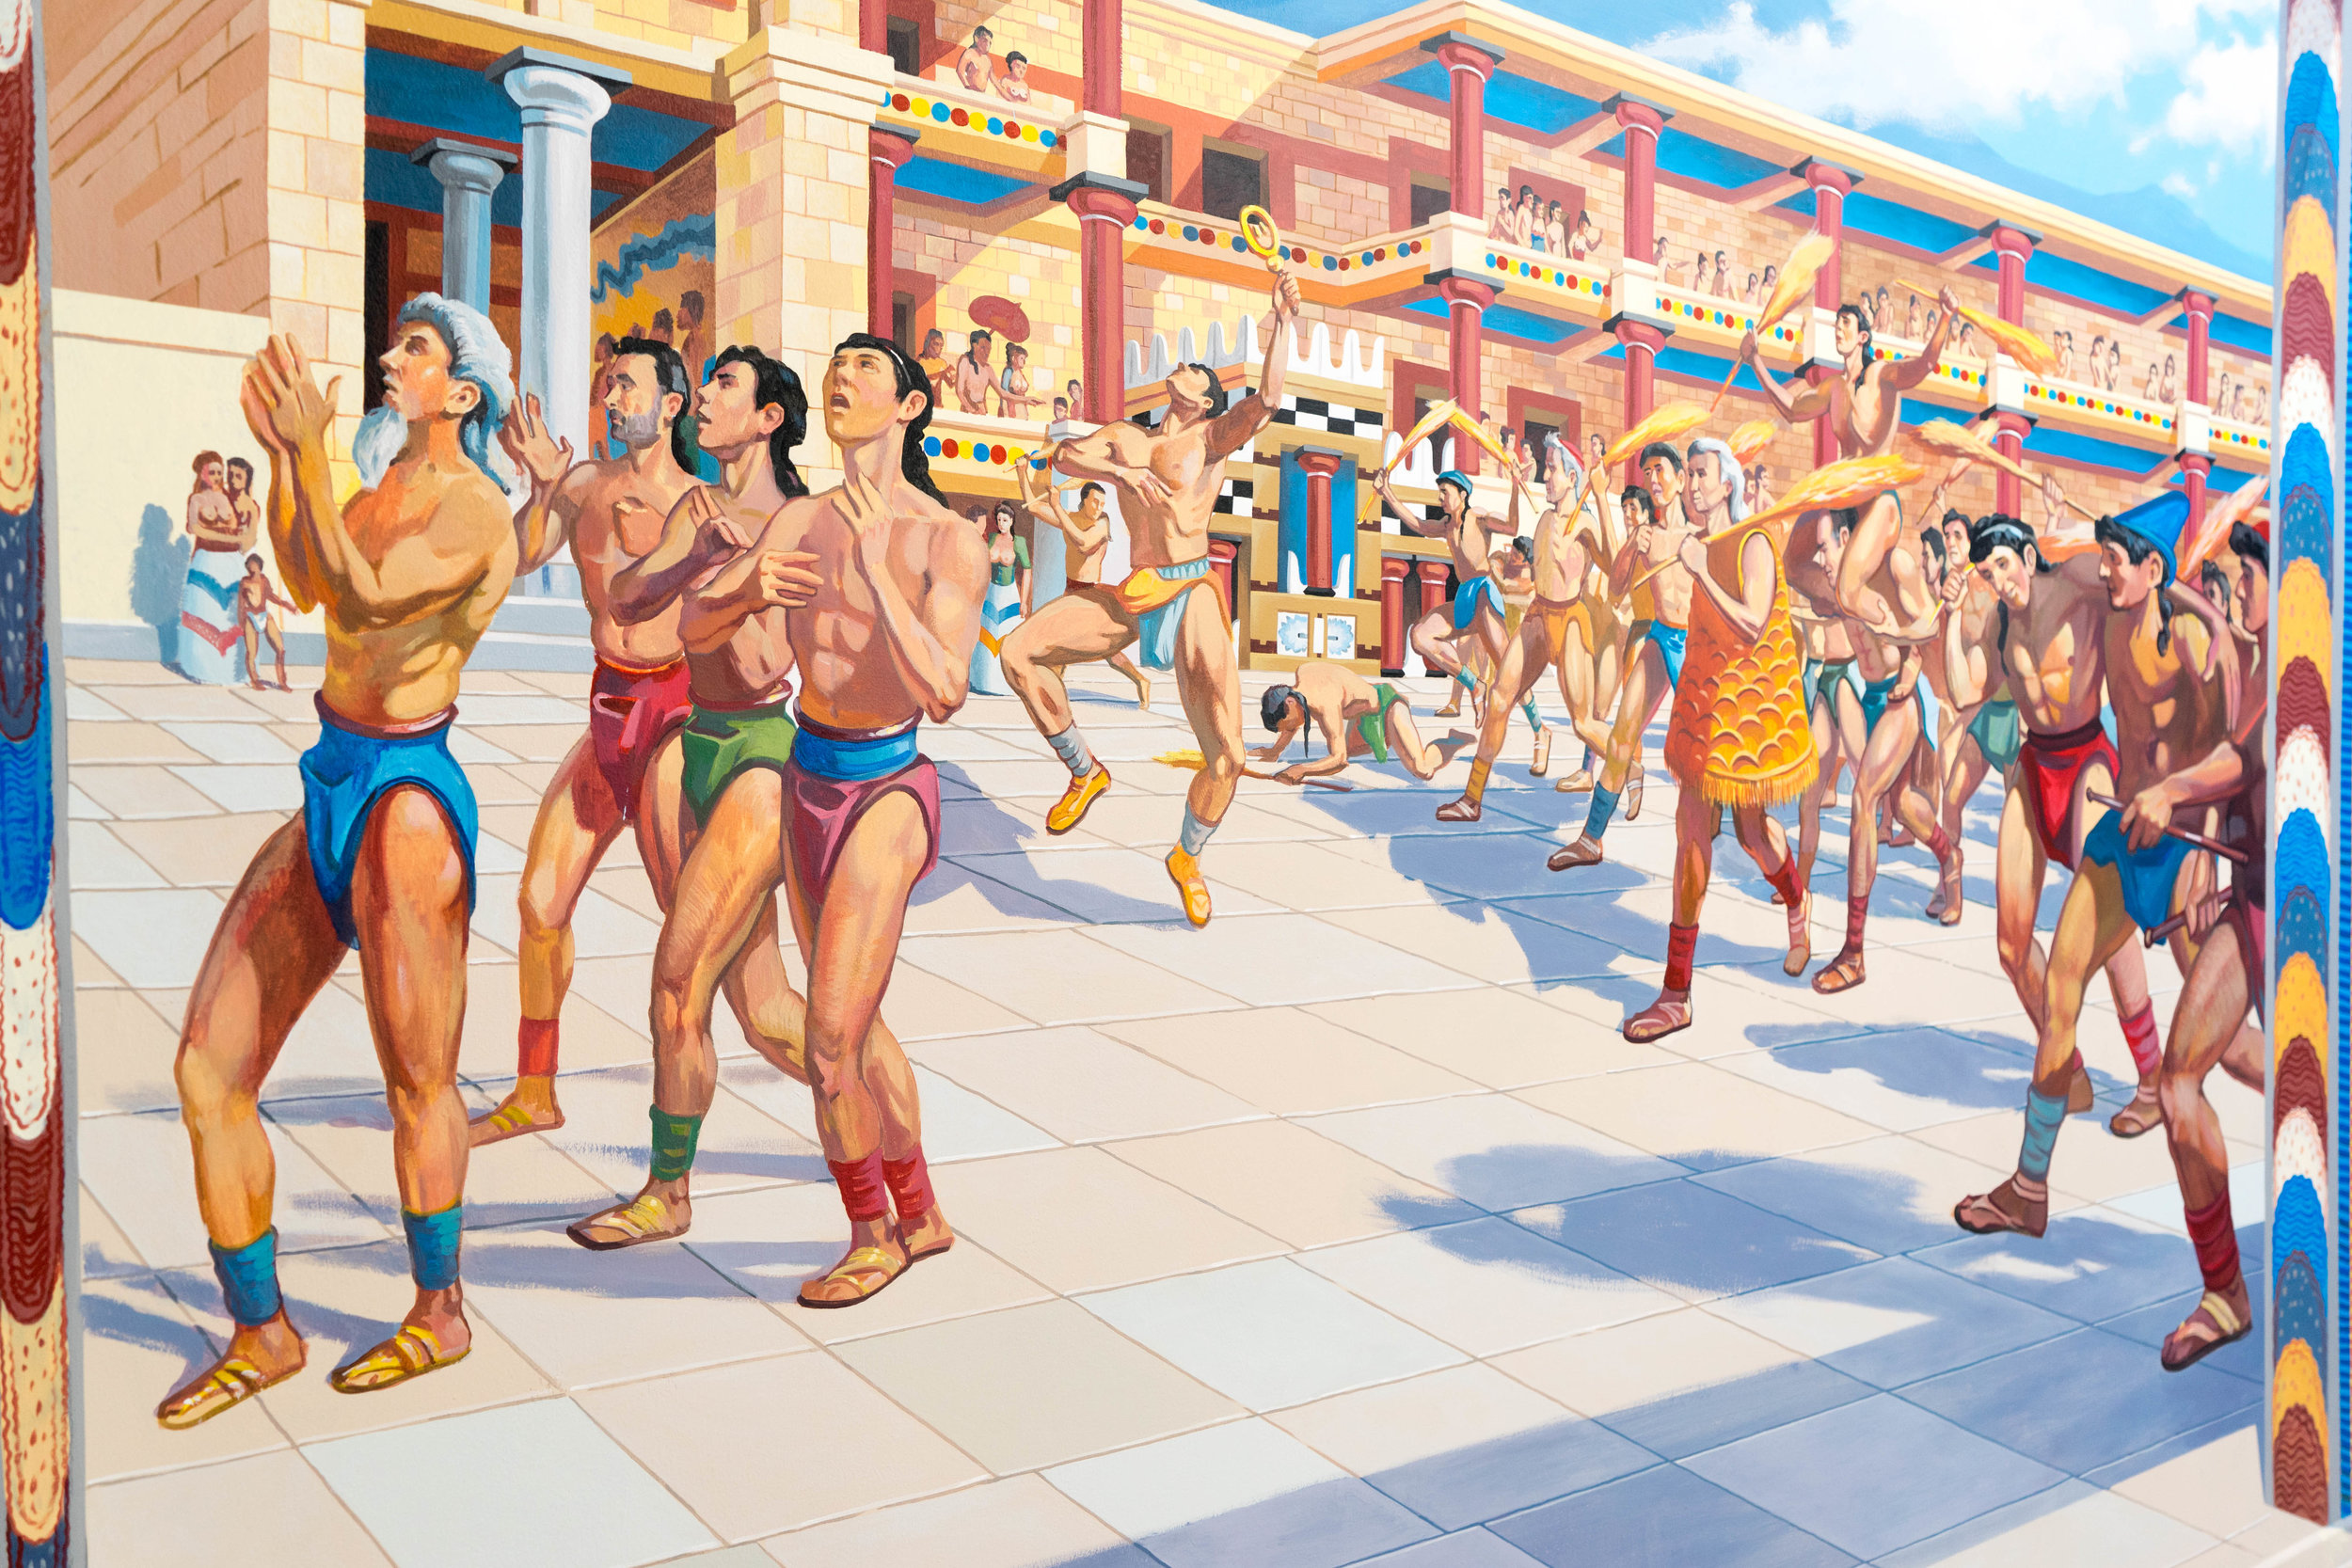 - The Minoans had agricultural festivals in their palaces all over Crete that lasted 120 days.